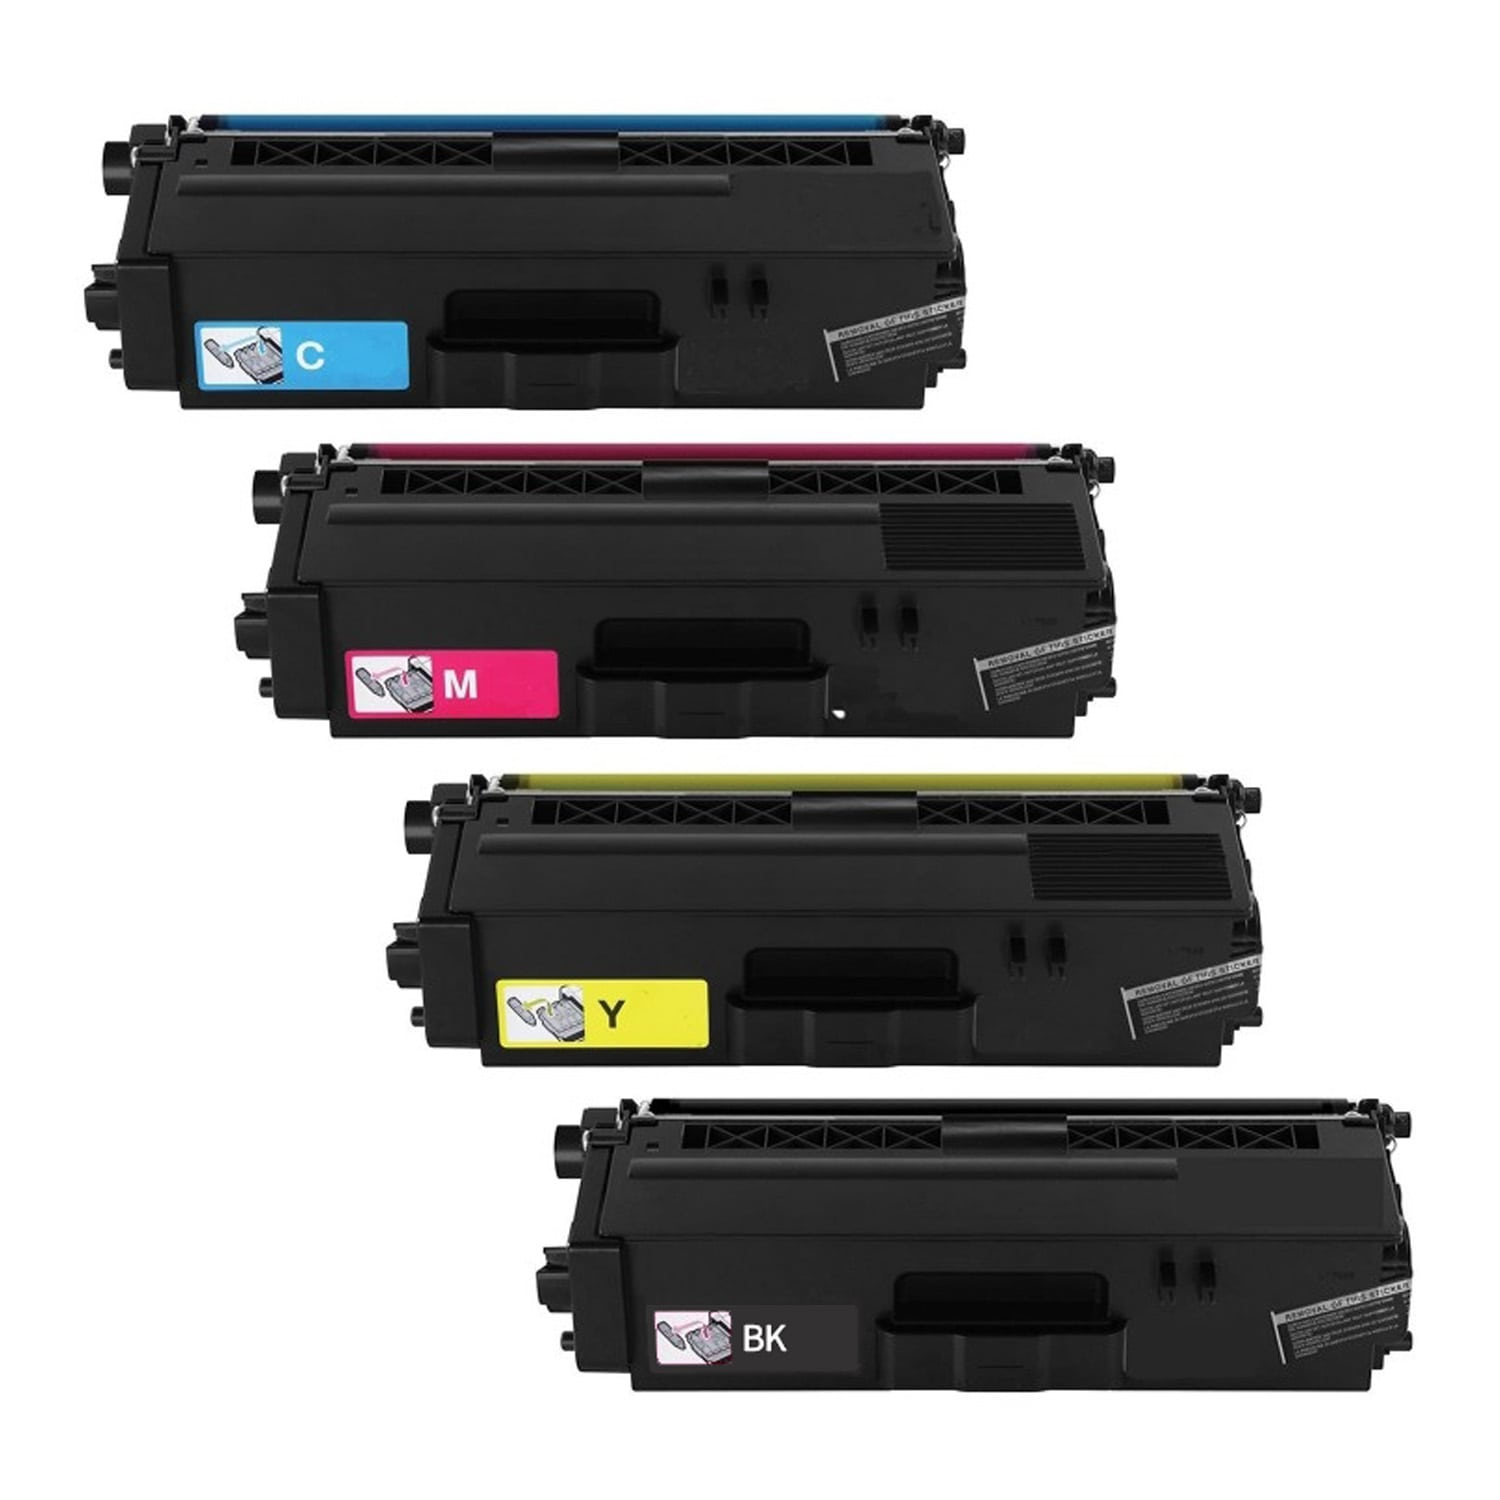 Compatible Brother TN339 Toner High Capacity Pack - 4 Cartridges